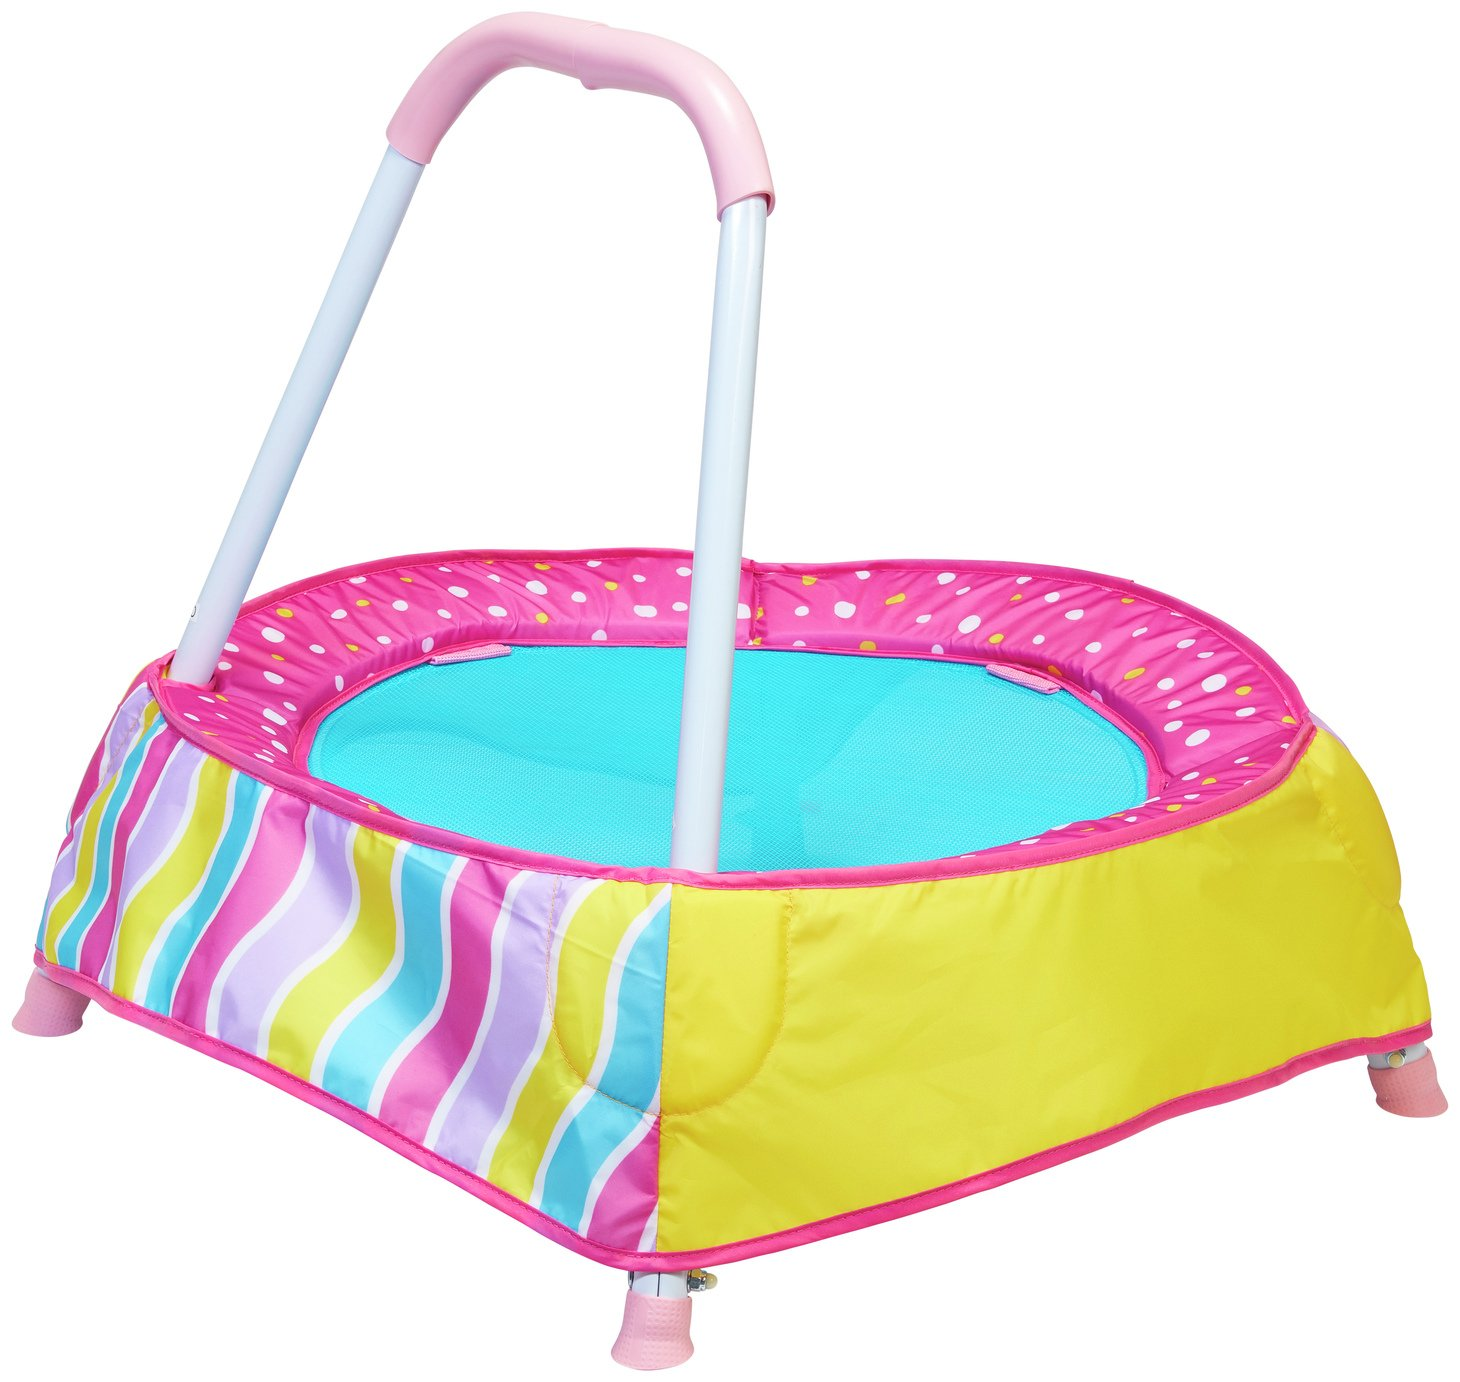 Chad Valley 2 Ft.Trampoline - Pink